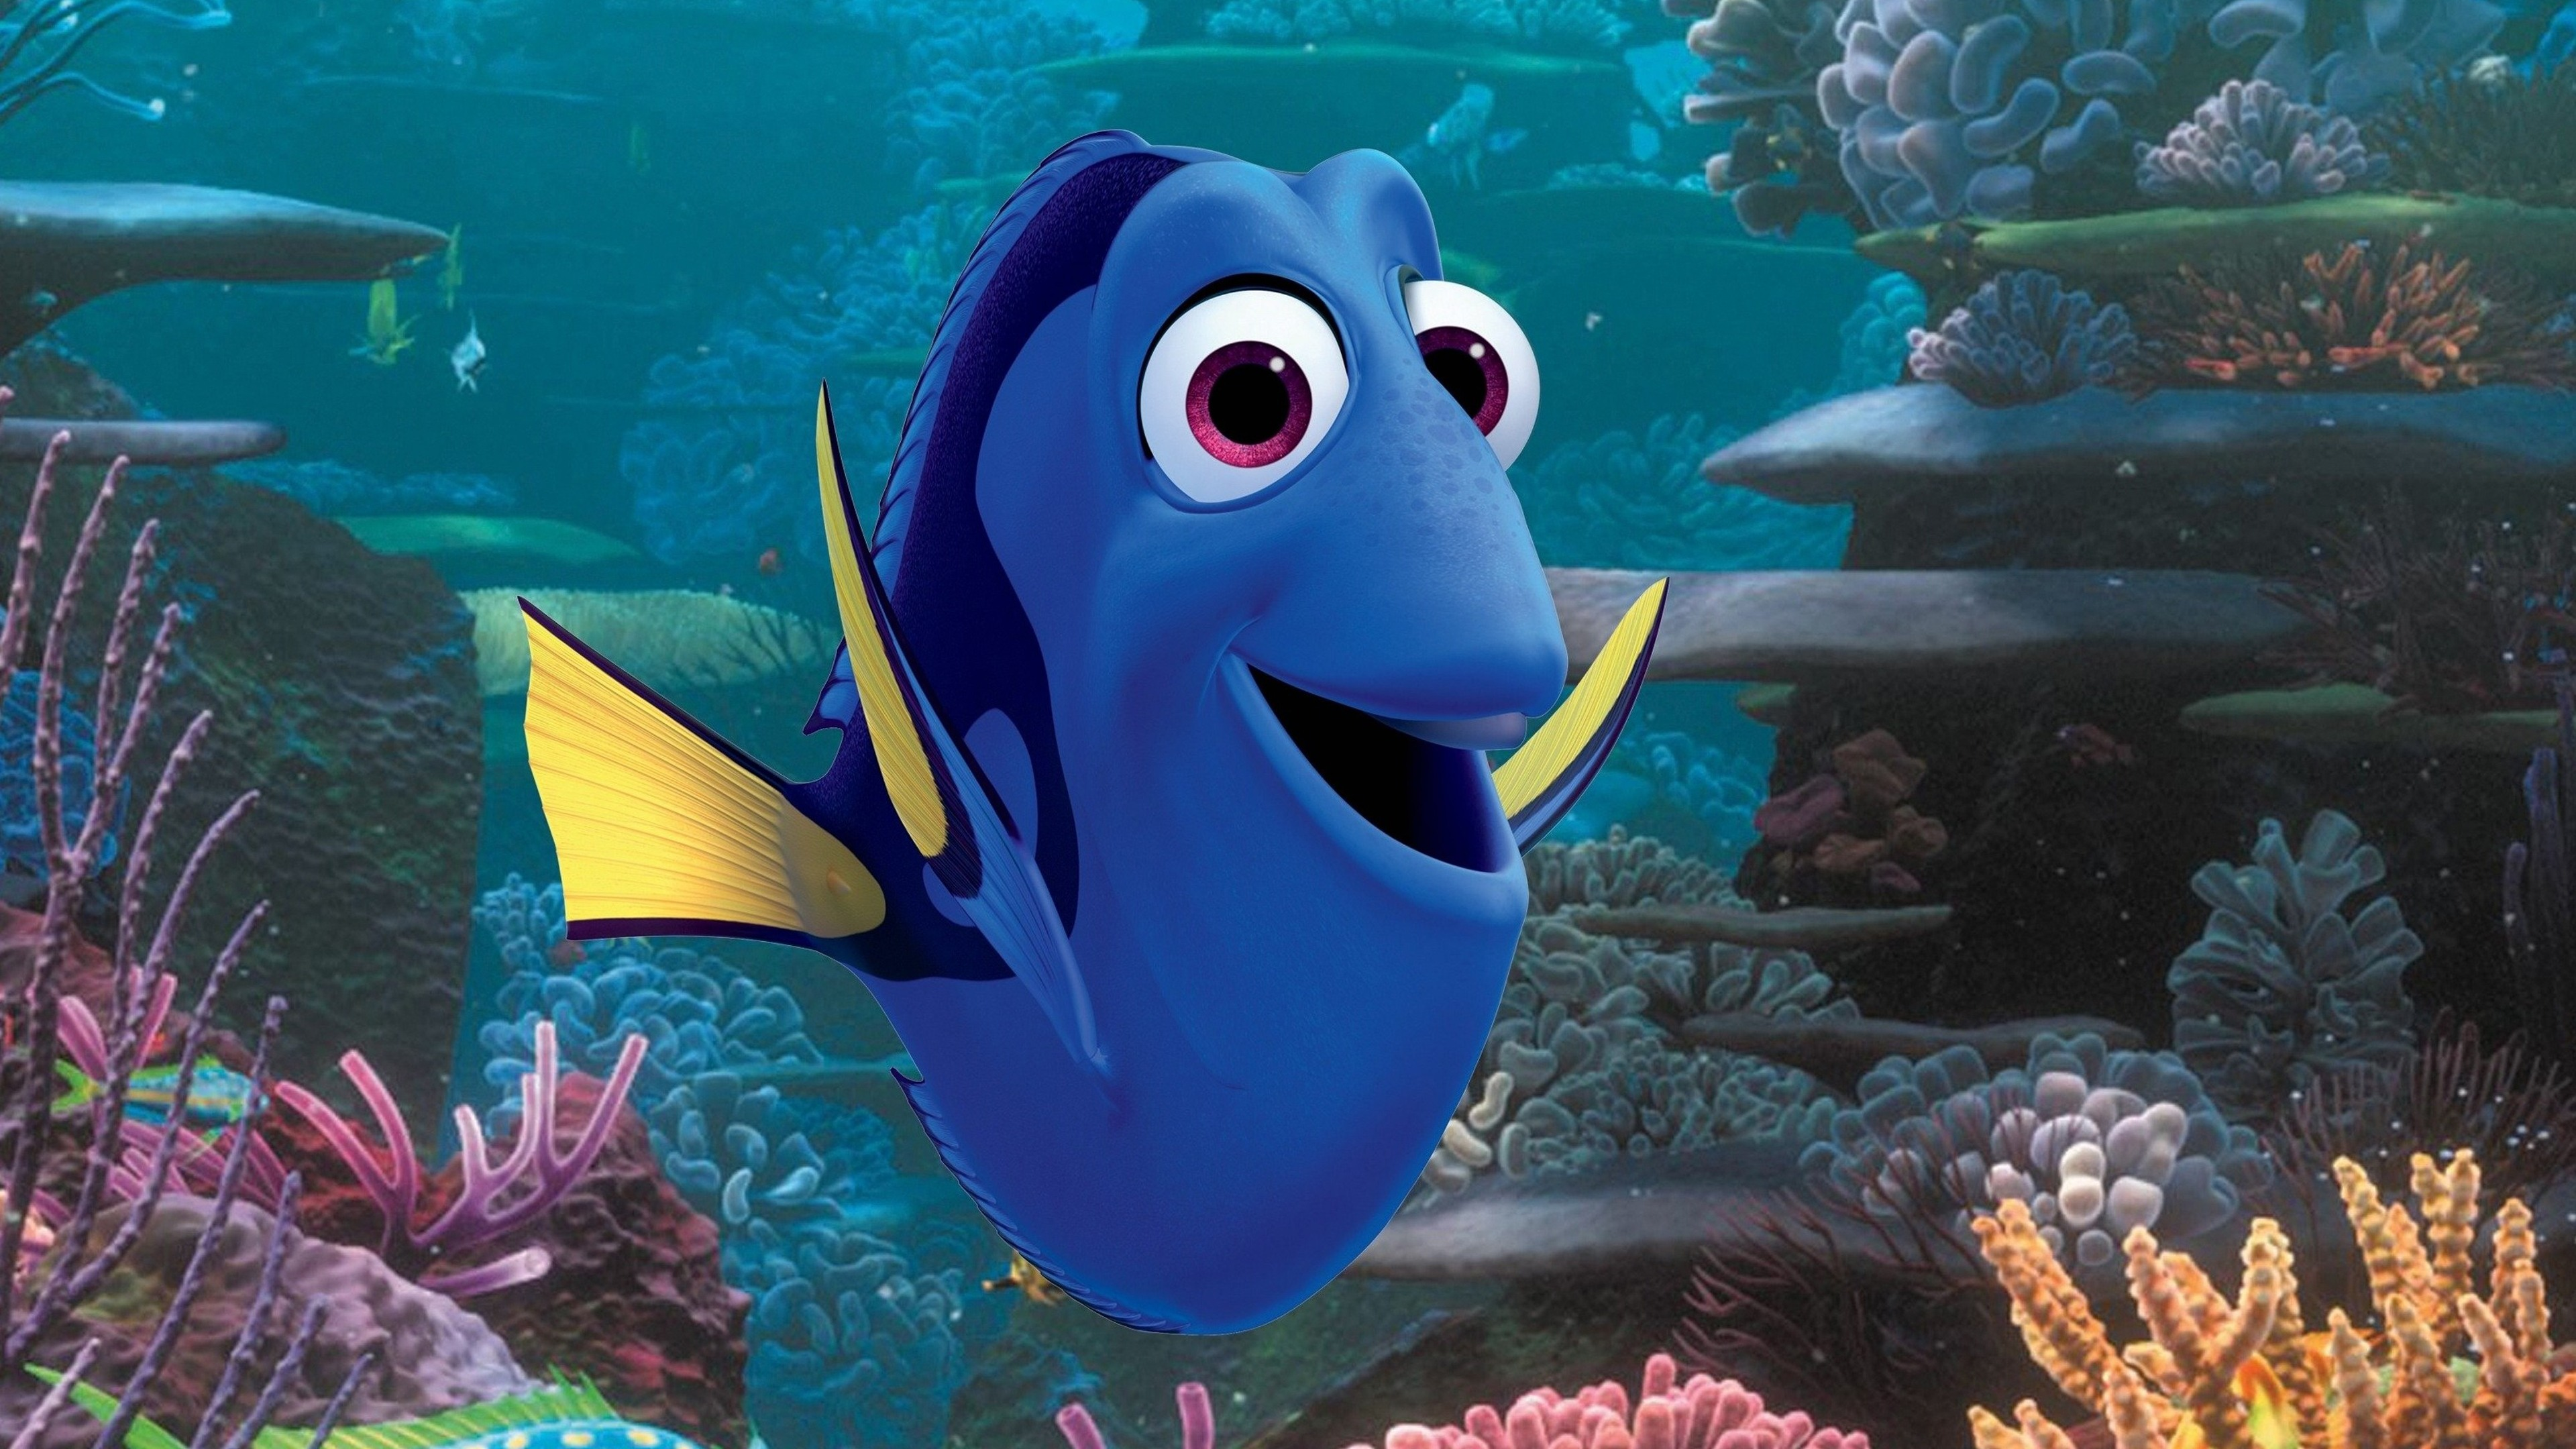 dory 1536363372 - Dory - movies wallpapers, finding dory wallpapers, animated movies wallpapers, 2016 movies wallpapers